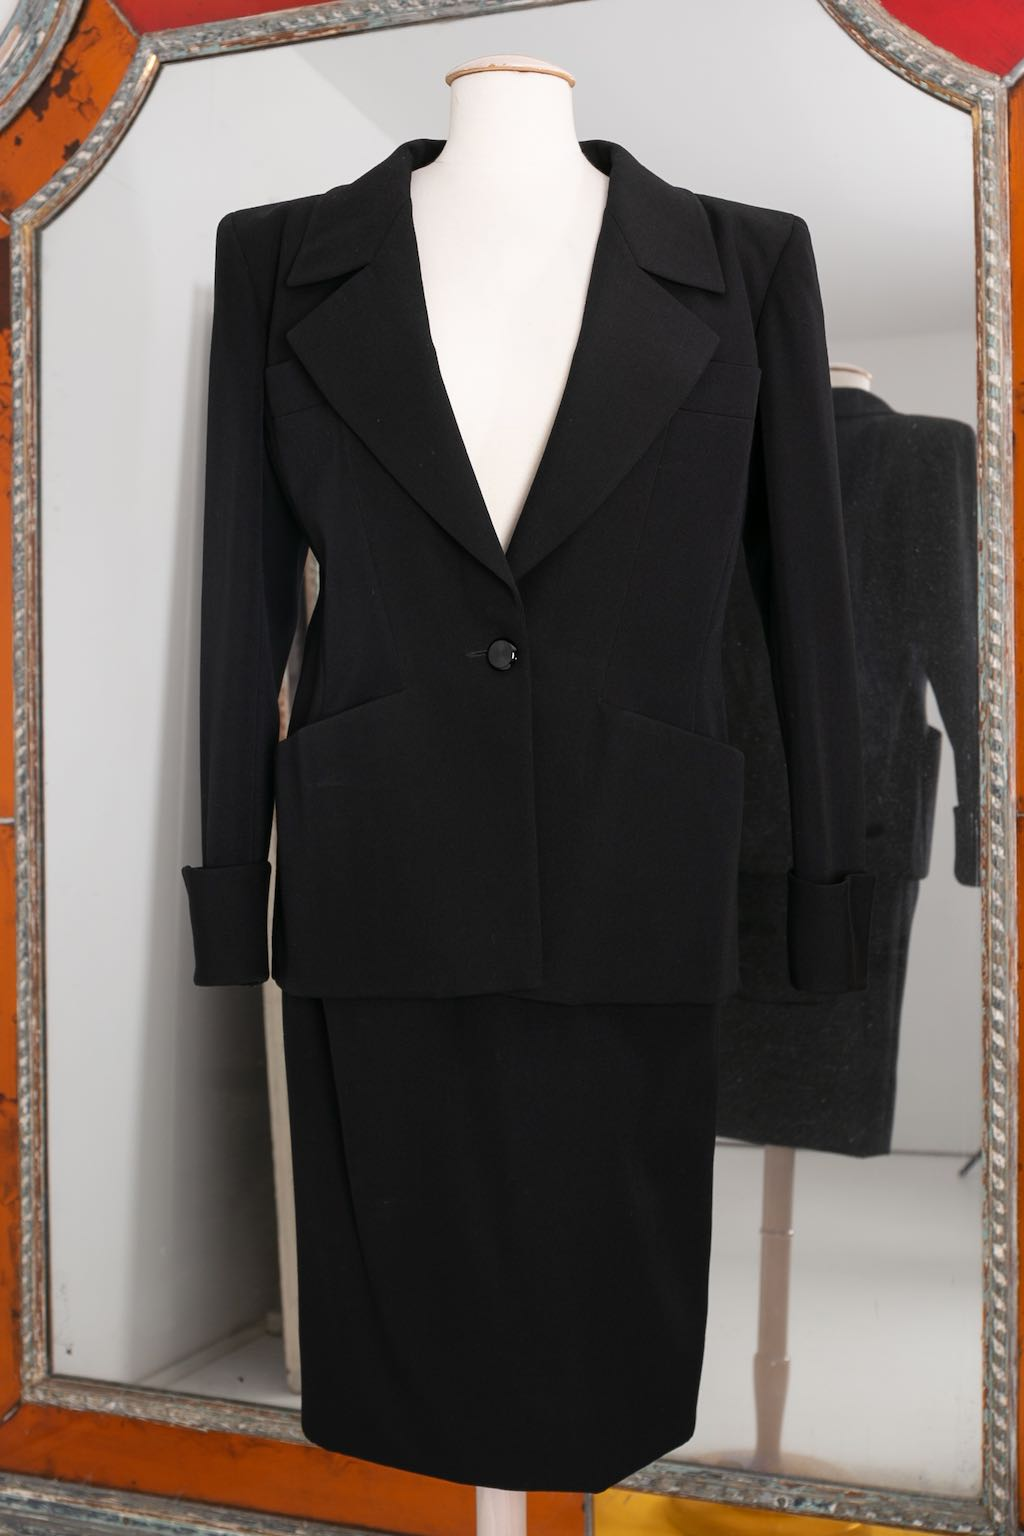 Yves Saint Laurent Haute Couture black skirt and jacket set